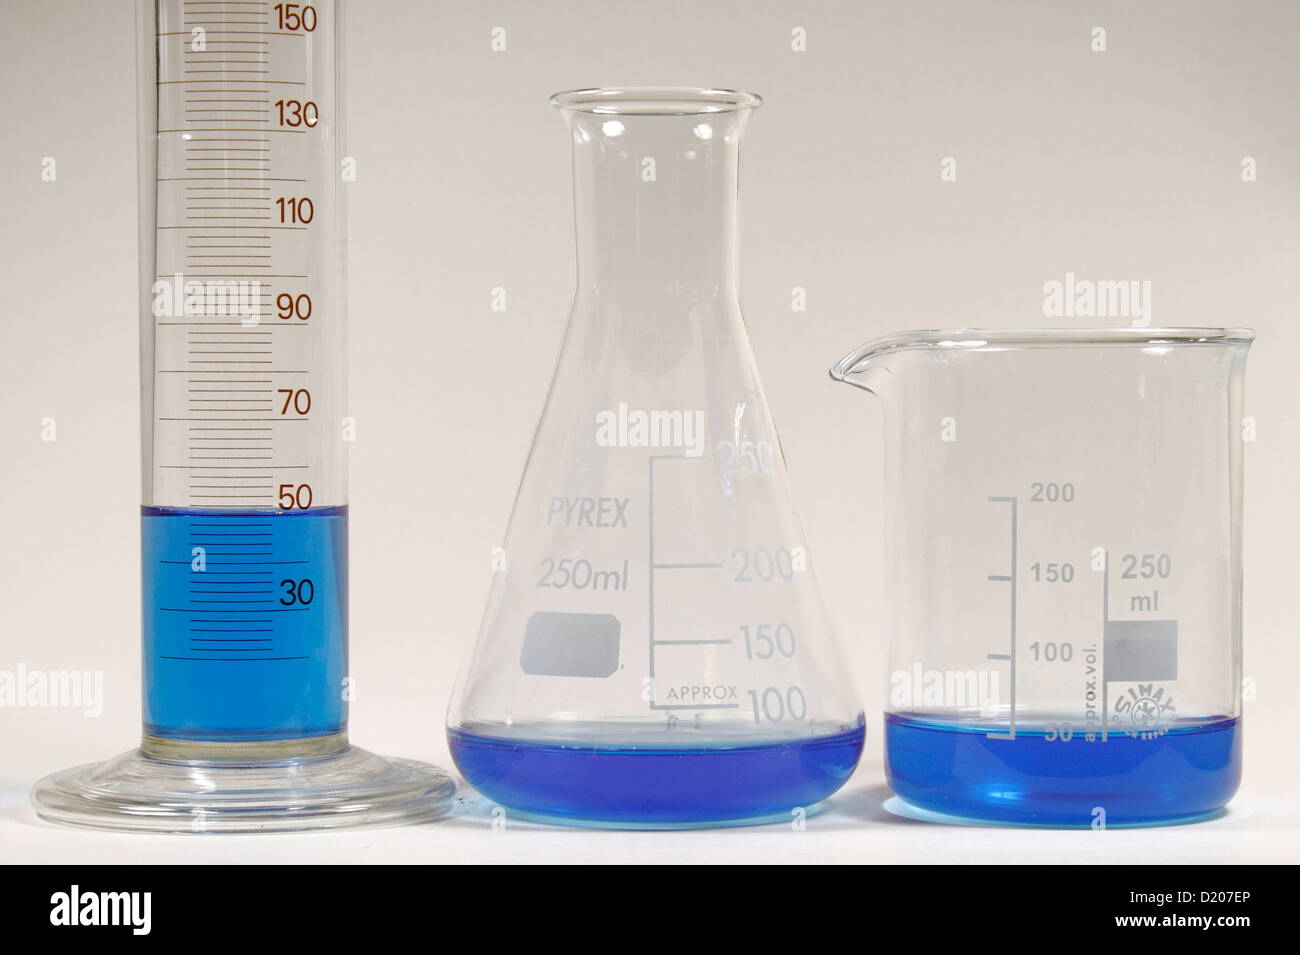 Image result for graduated cylinders and beakers